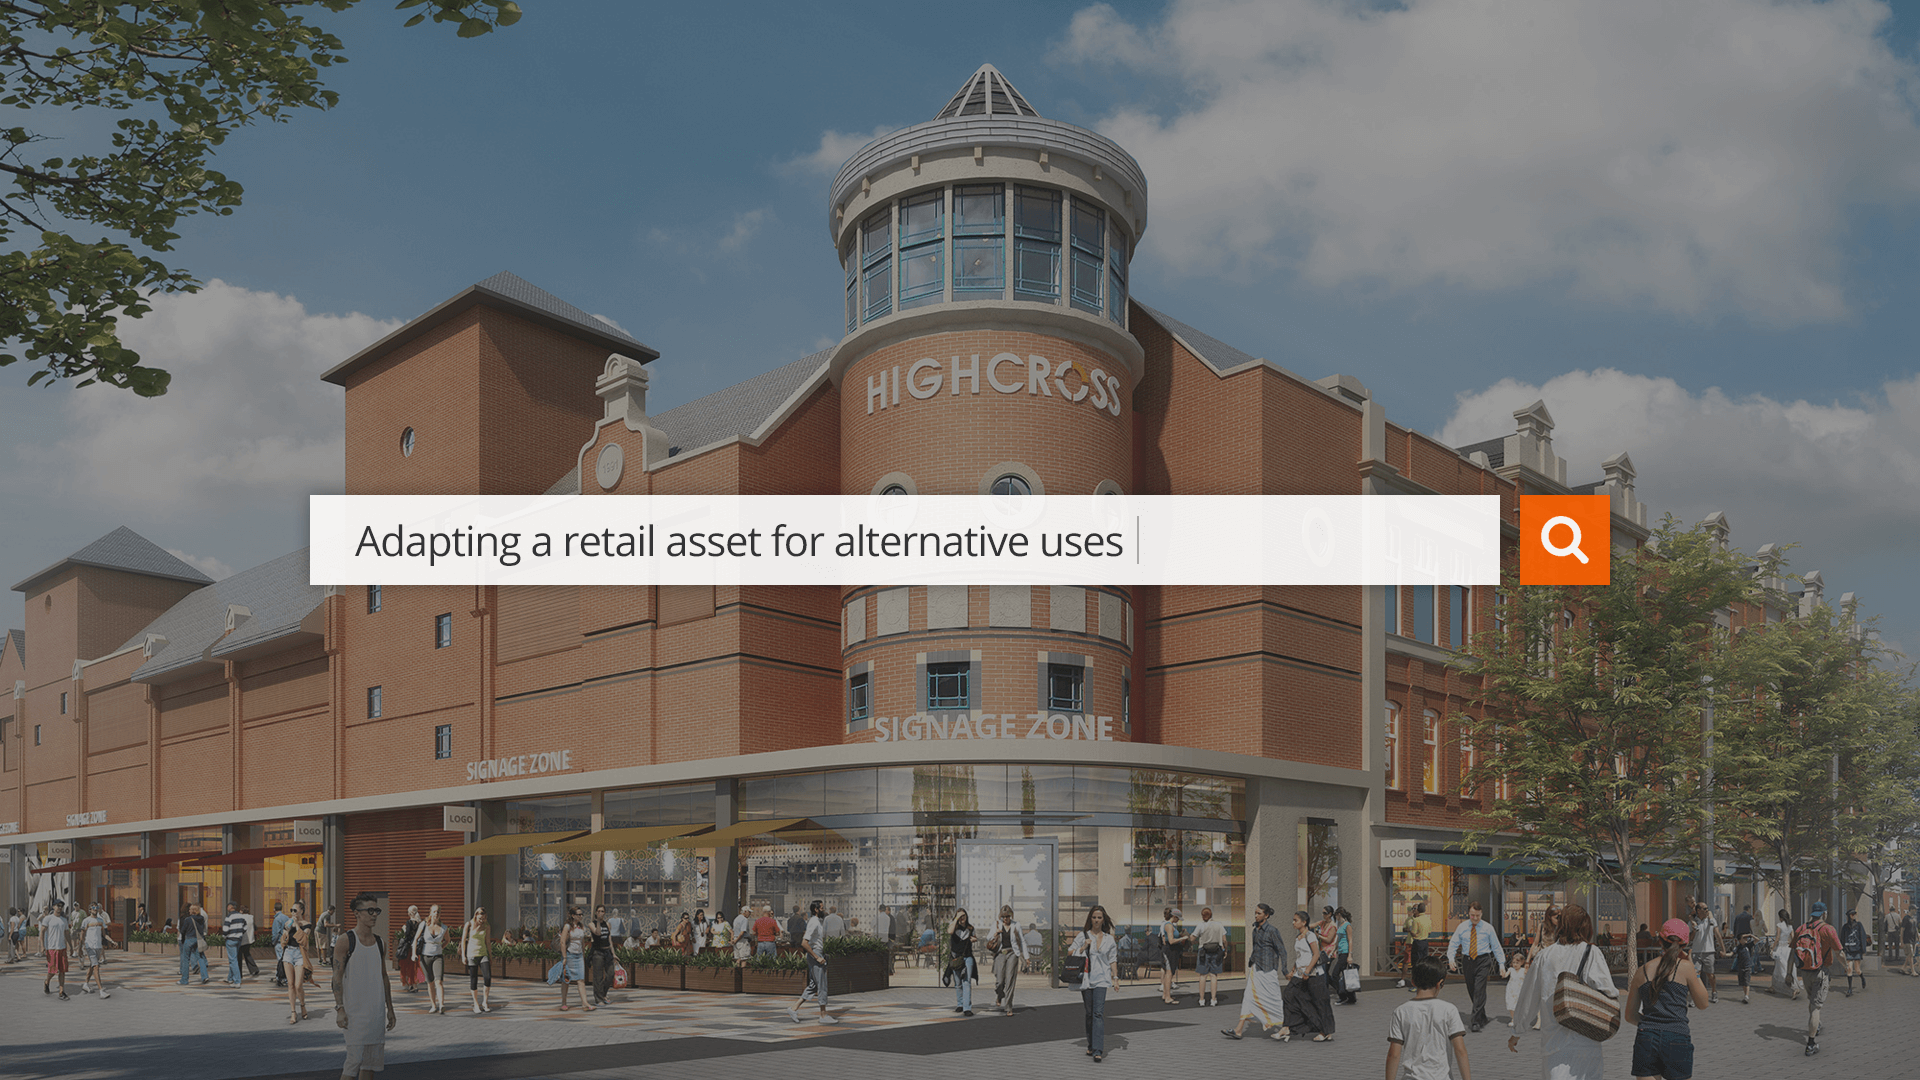 Highcross, Leicester - Repurposing the High Street